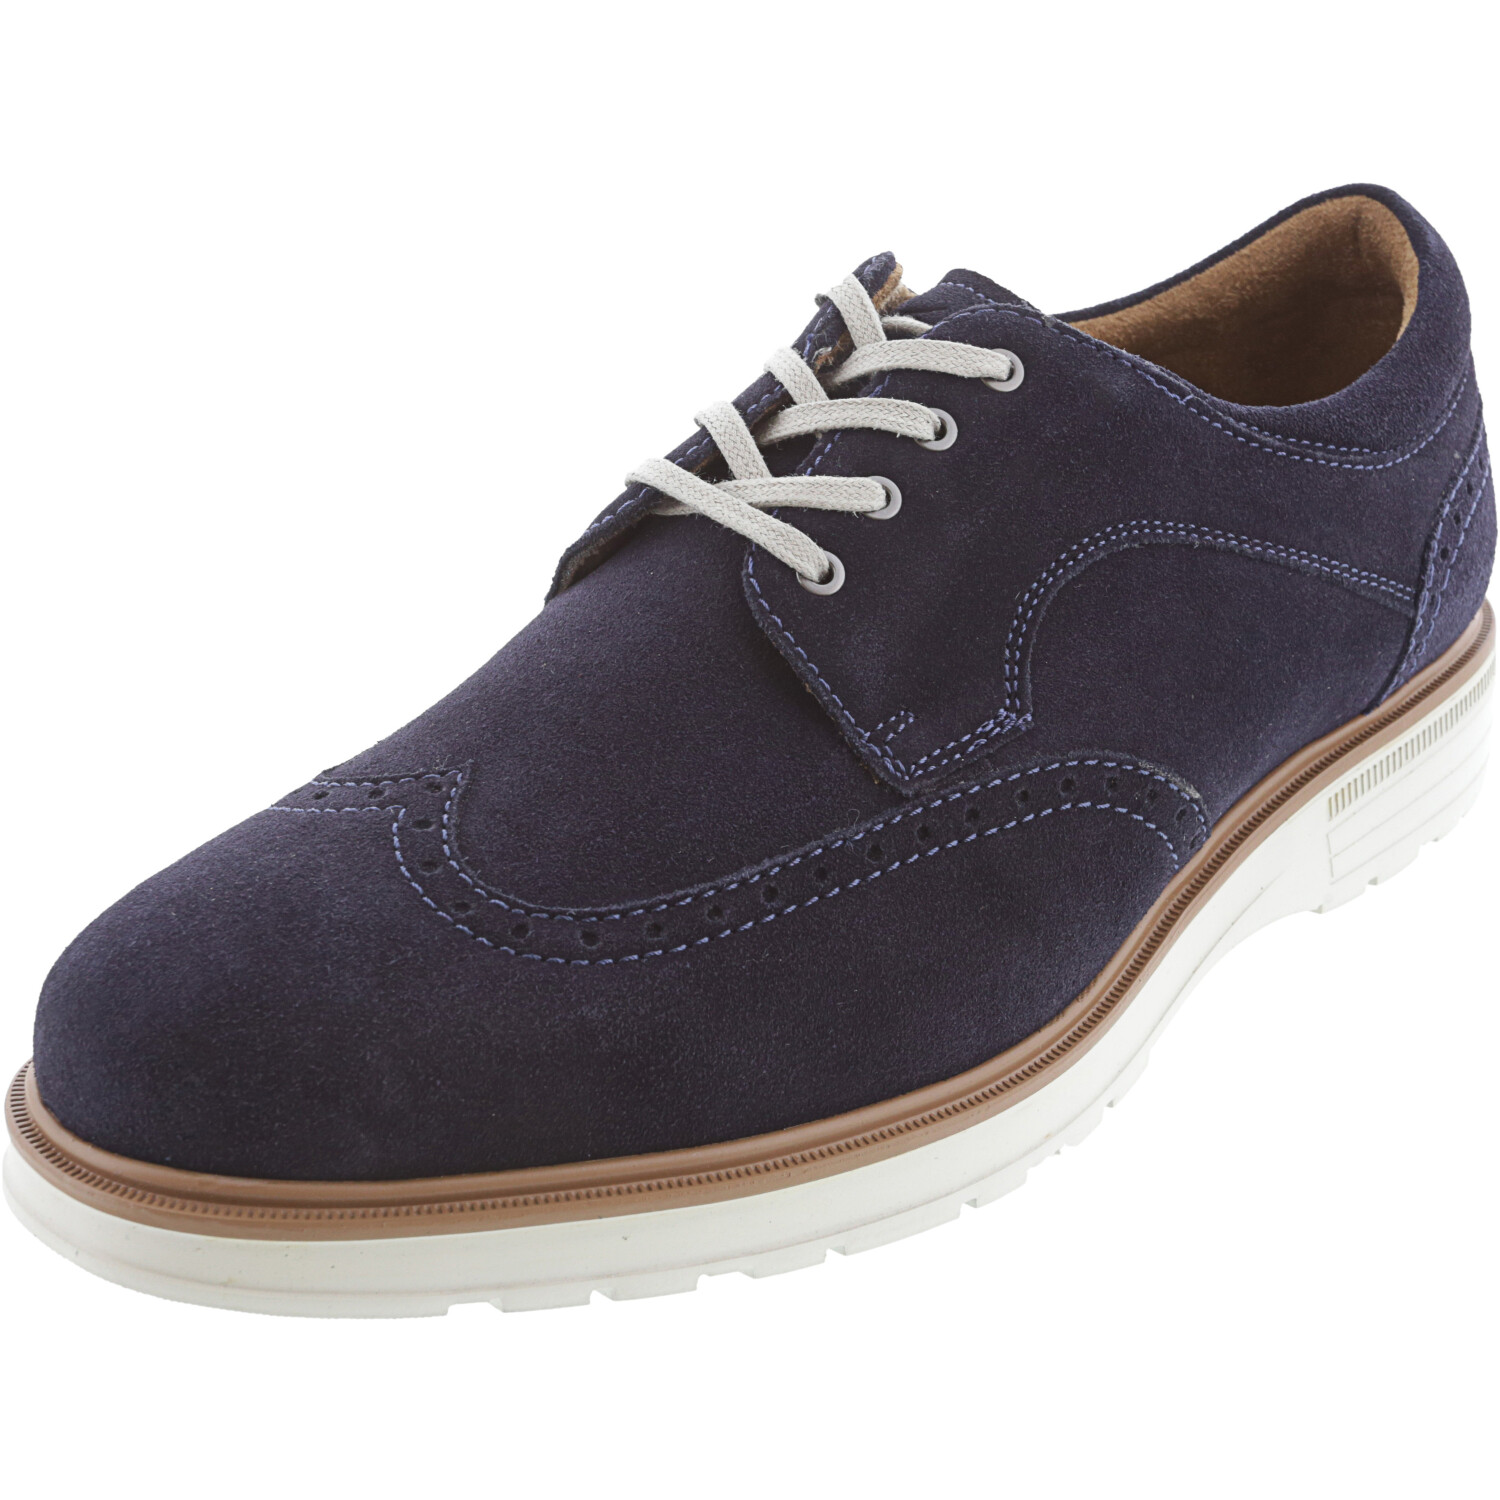 Florsheim Men's Astor Wing Ox Navy Ankle-High Leather Oxford - 10.5W